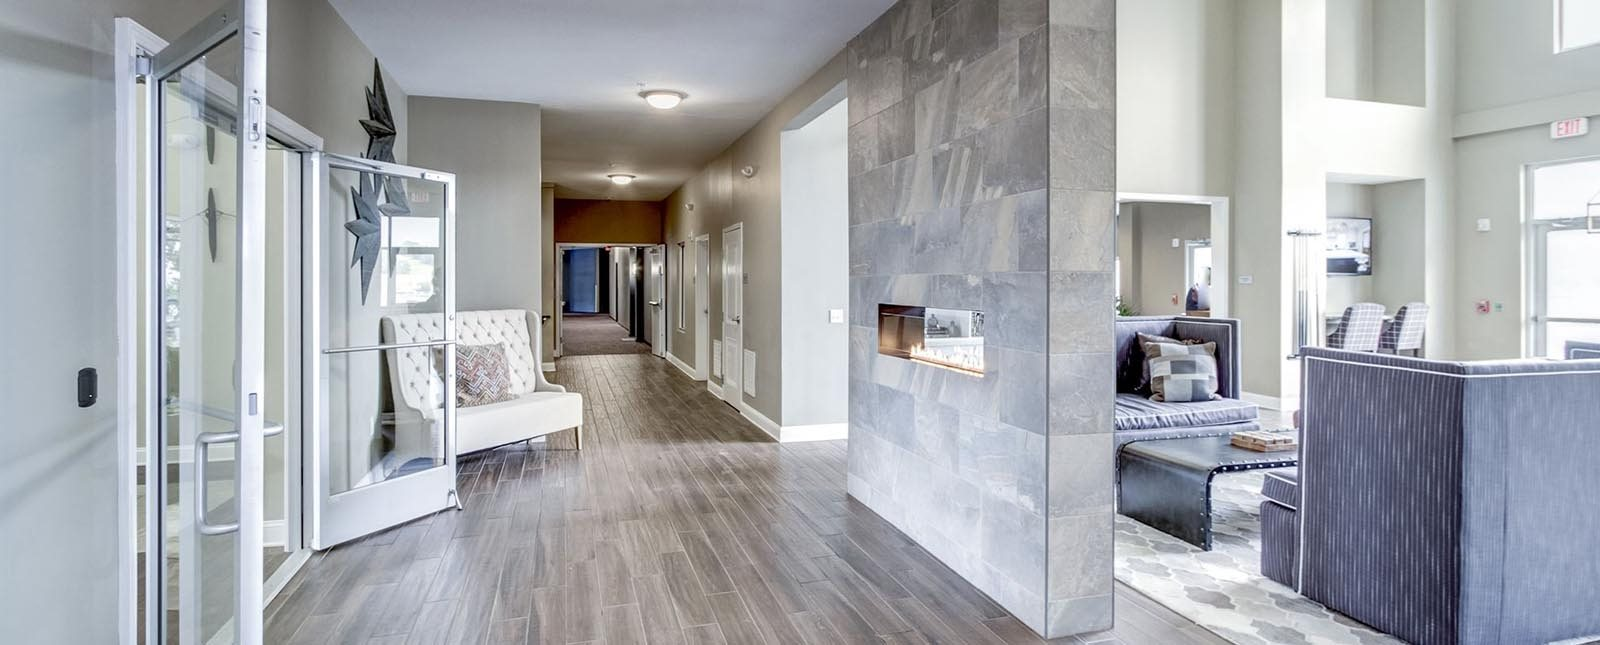 Hallways of The Haven luxury apartments in Malvern, PA